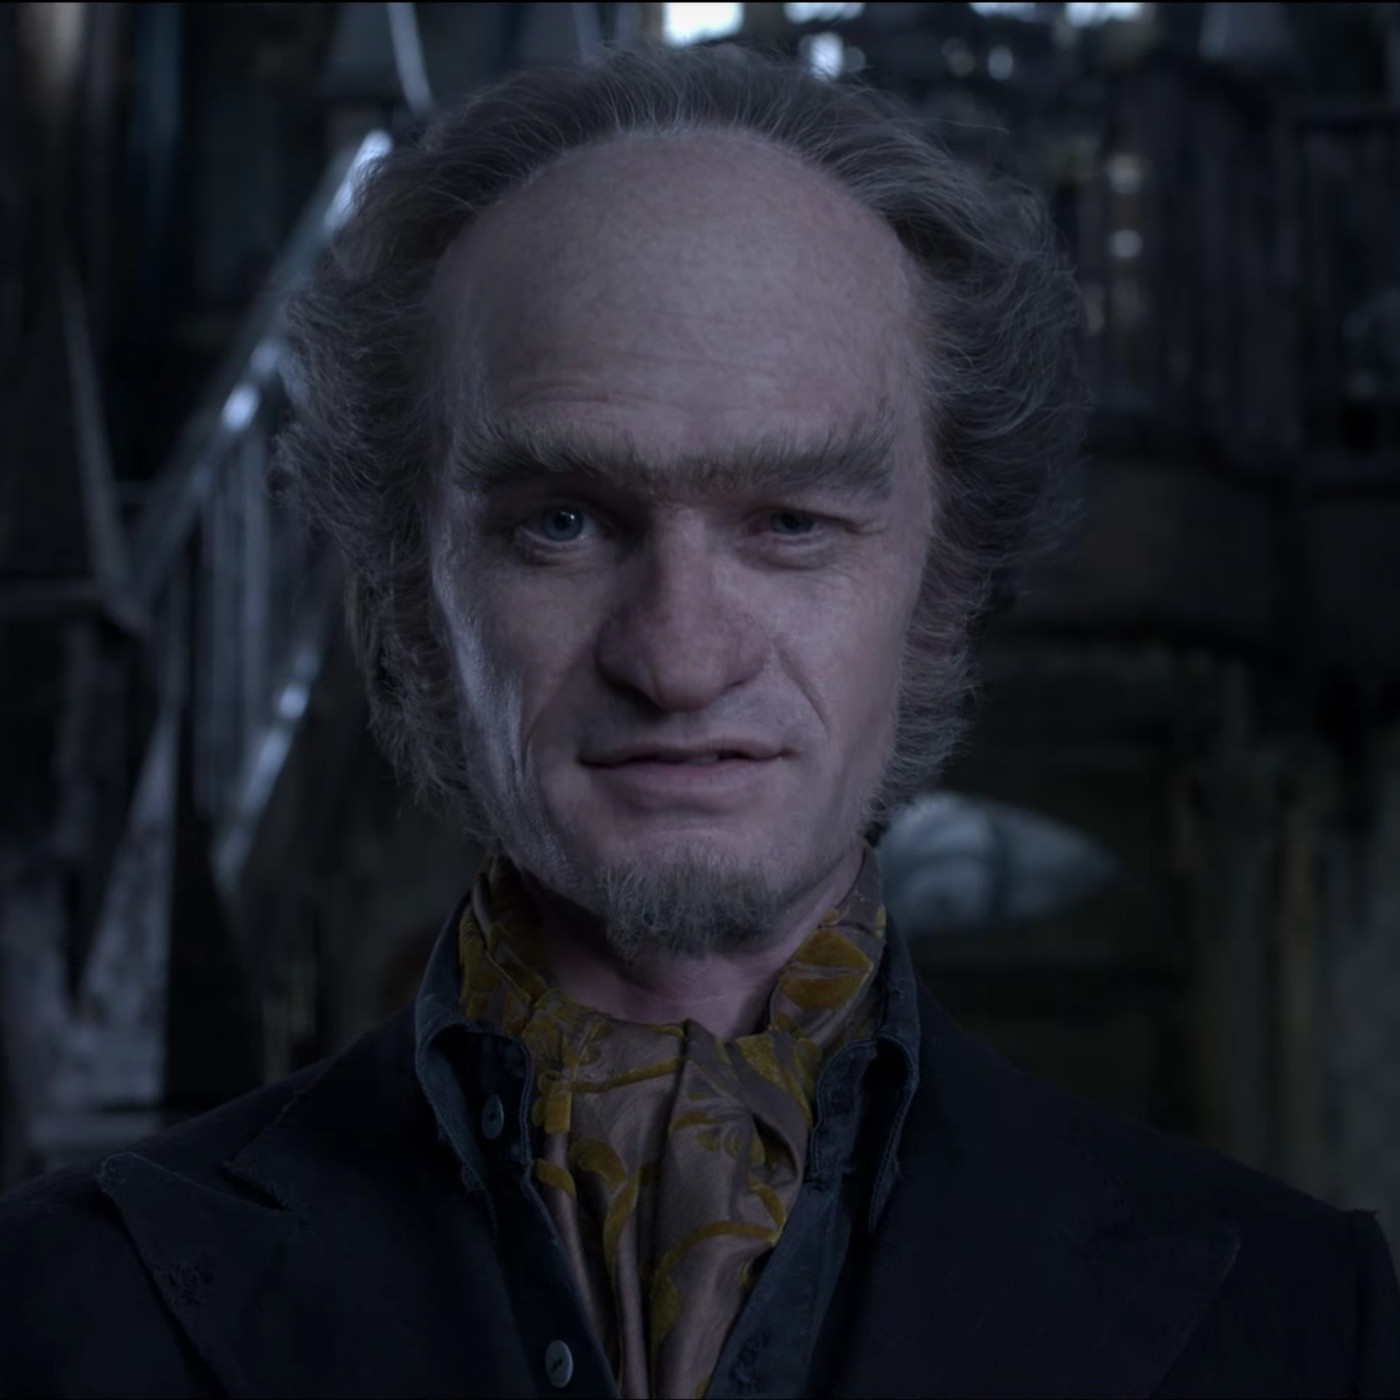 Netflix S Series Of Unfortunate Events Looks Like A Promising Mix